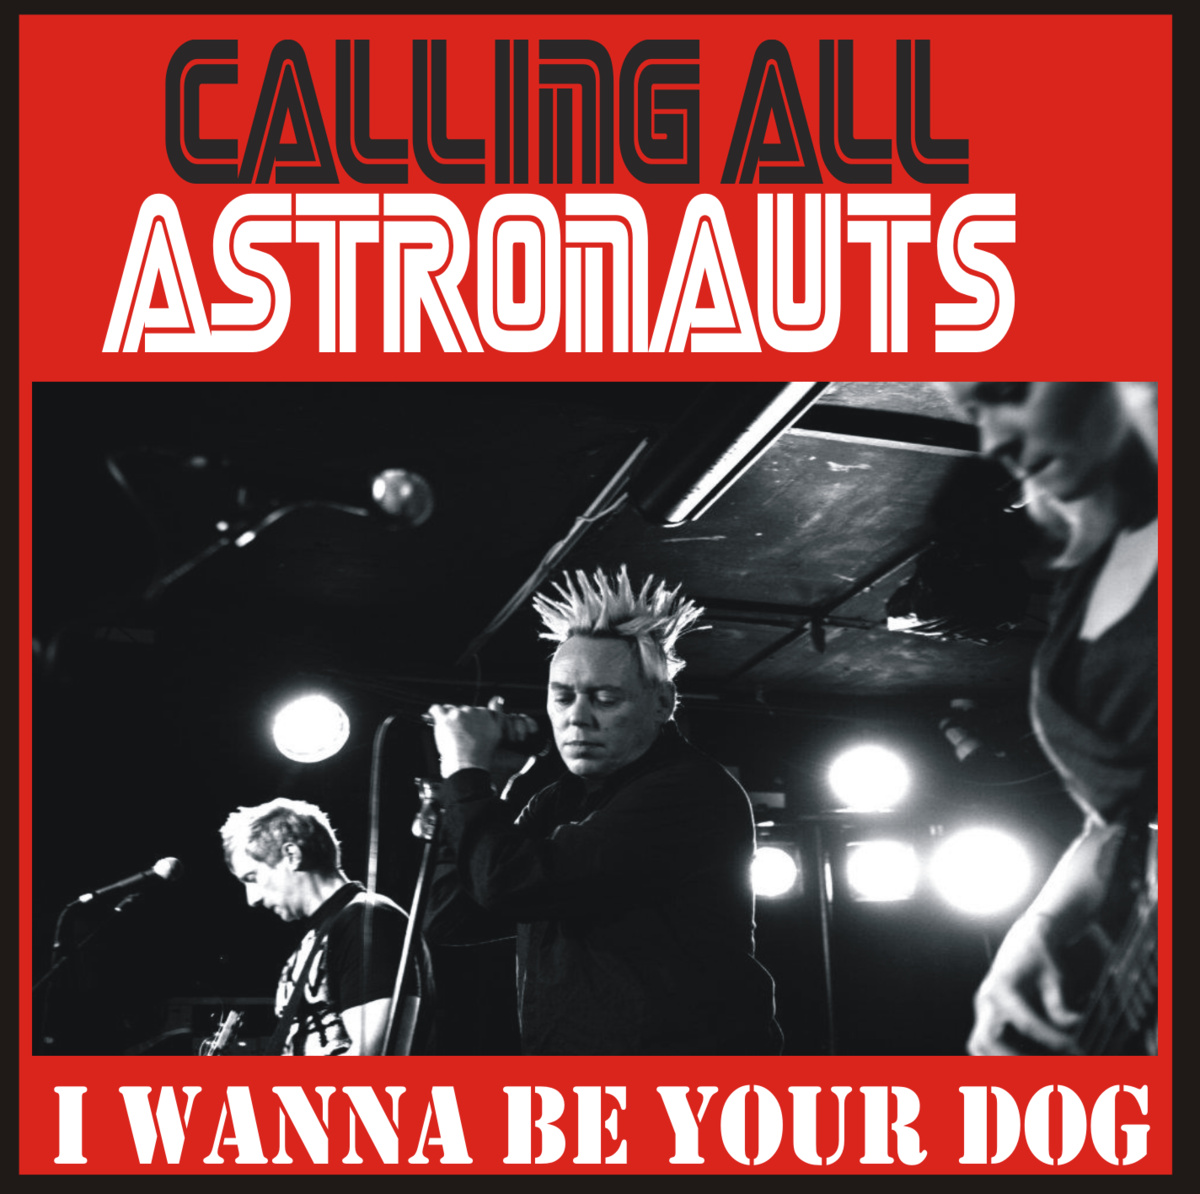 Calling All Astronauts - I Wanna Be Your Dog